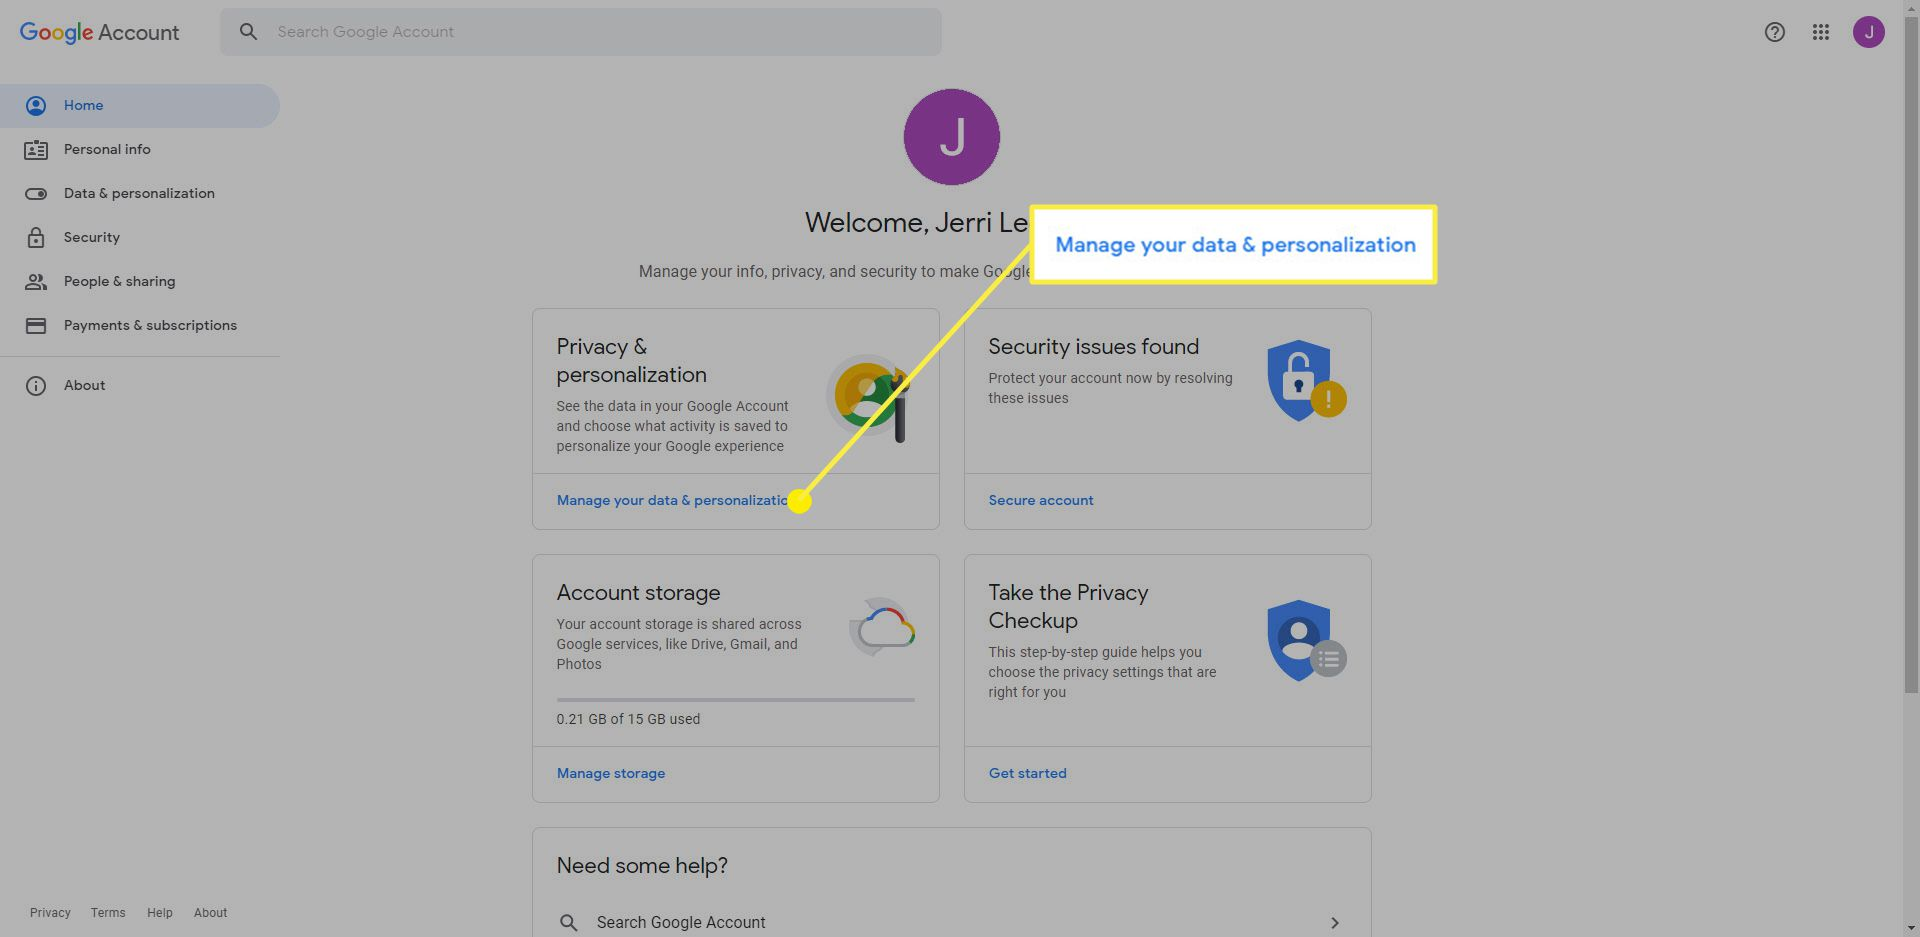 Google Account page with the Manage your data & personalization link highlighted